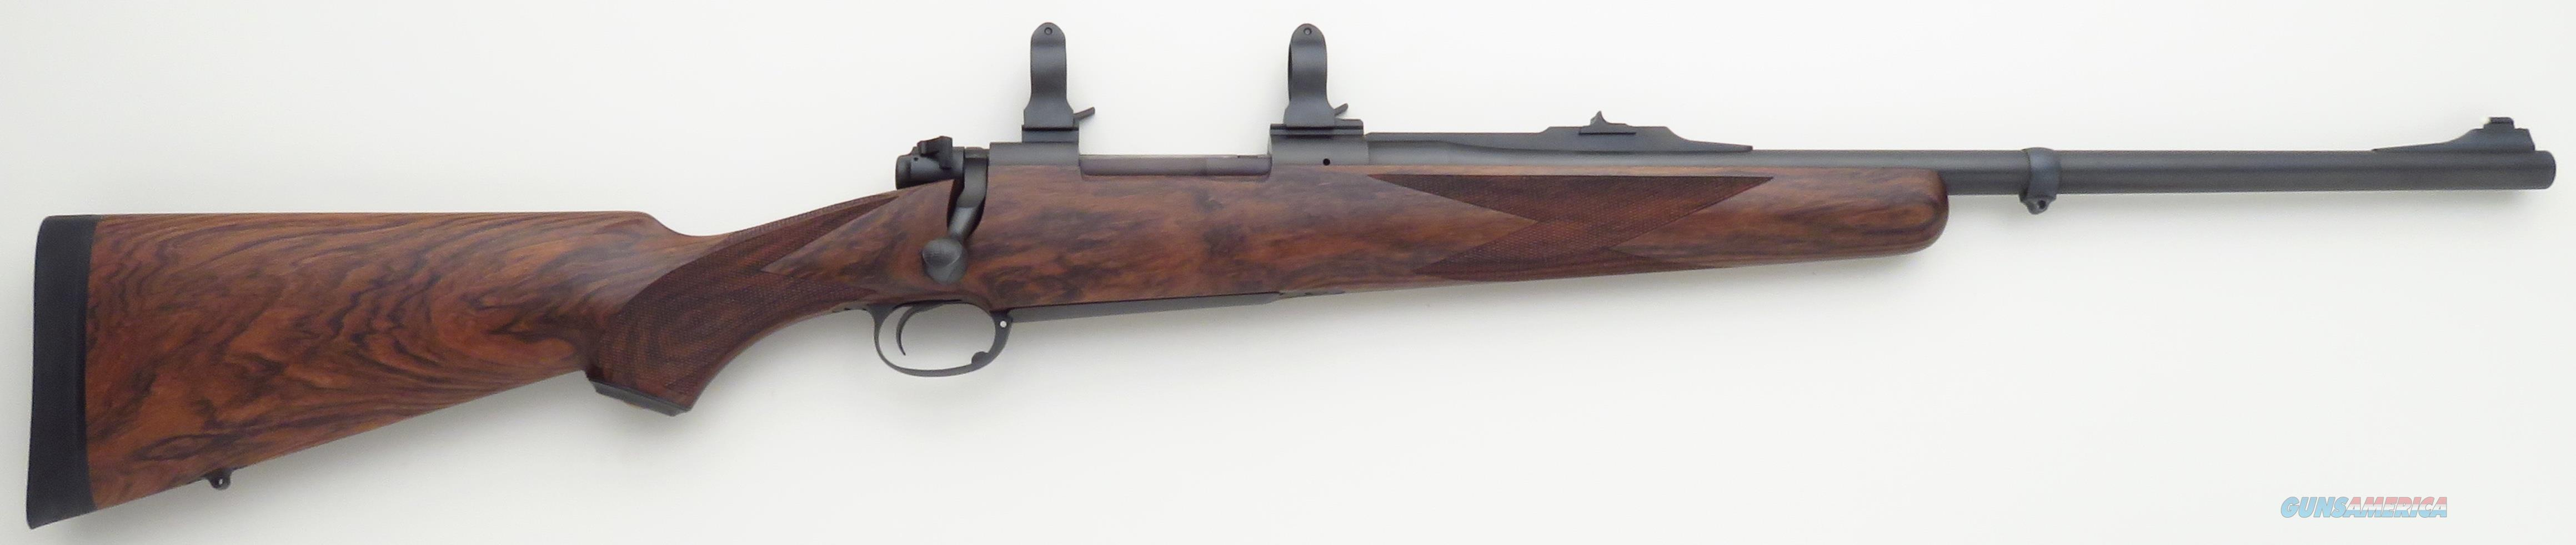 Dakota 76 Safari .375 H&H Magnum,  drop box, quarter rib, Talley, checkered bolt knob, exceptional wood  Guns > Rifles > Dakota Arms Rifles